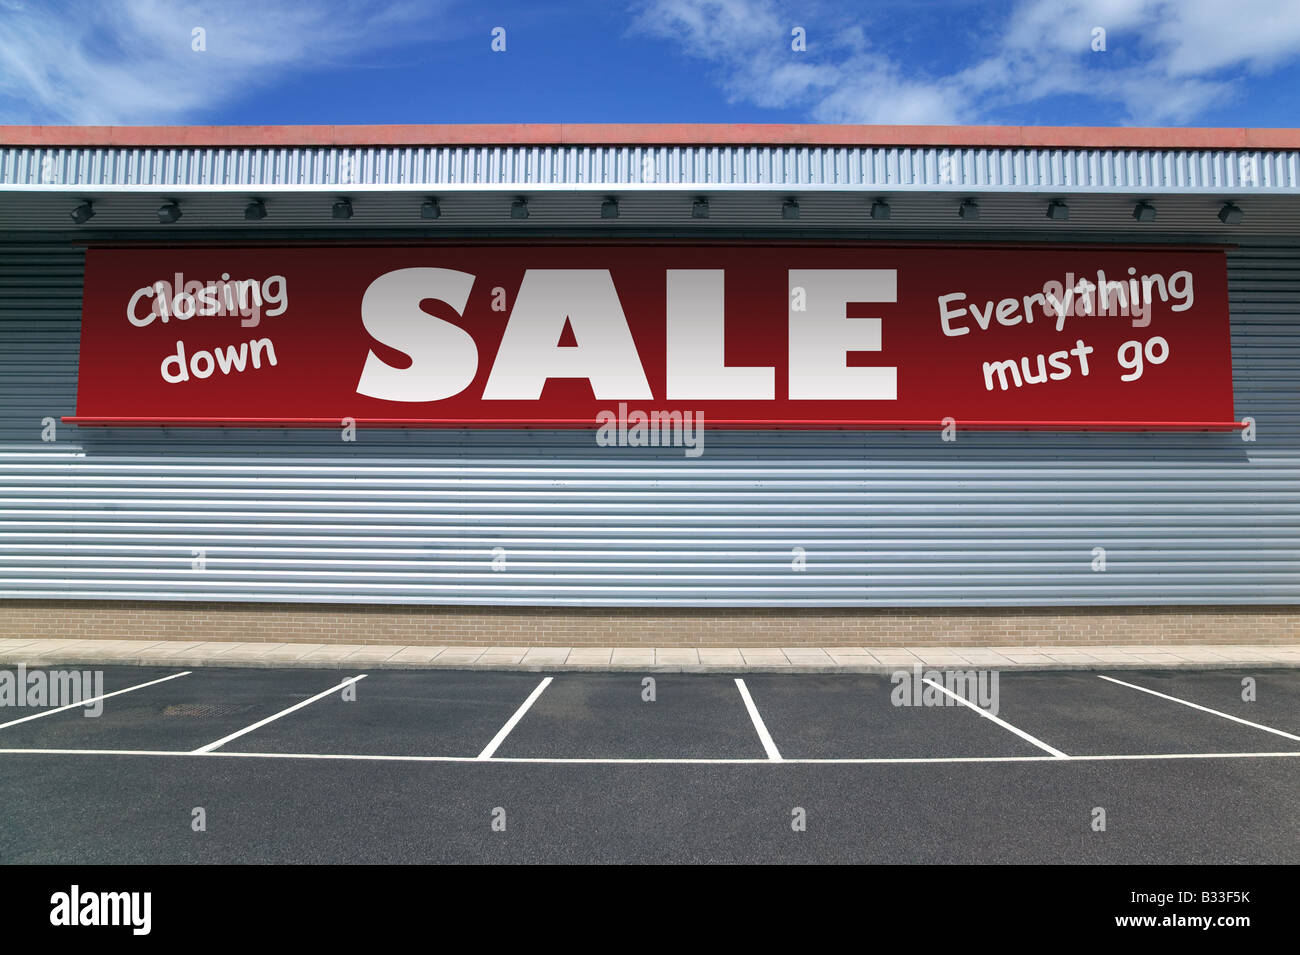 Retail building with a banner on the outside for a closing down sale Good image for recession concepts - Stock Image